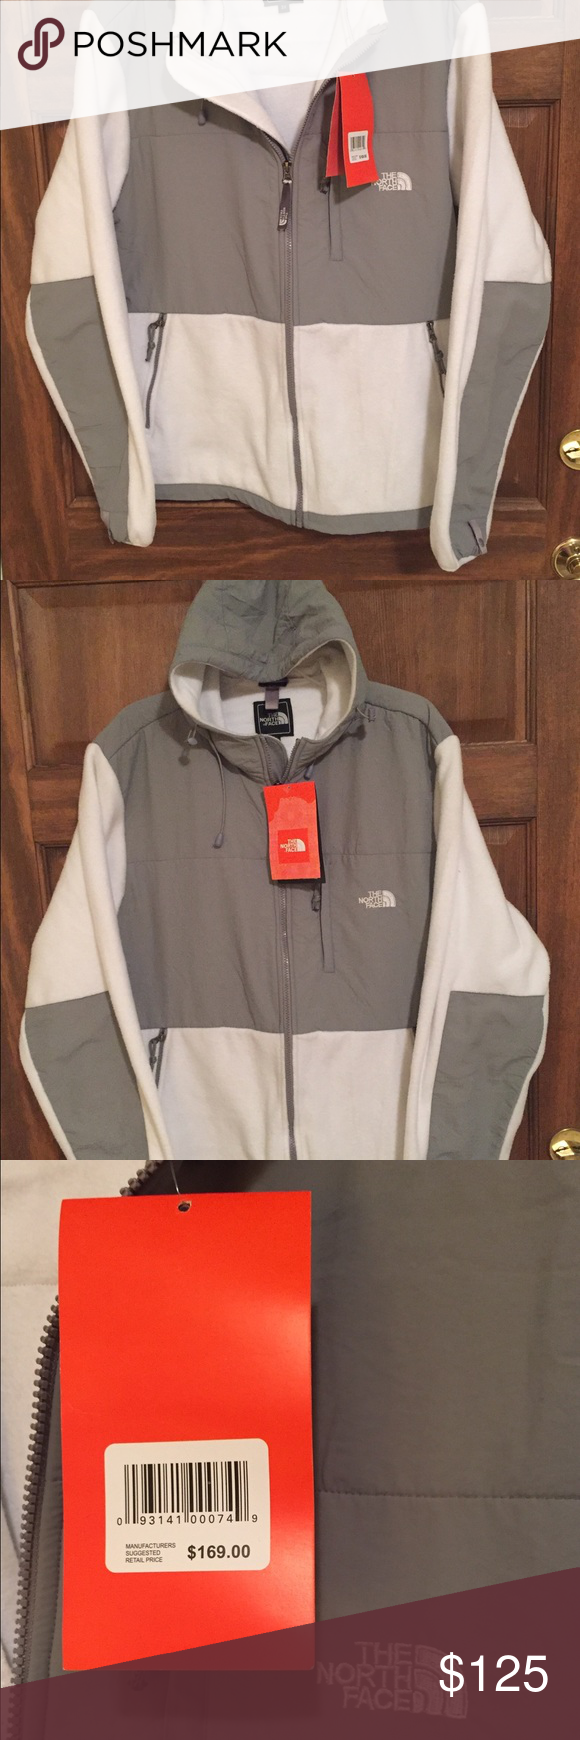 North Face Womens Fleece Jacket The North Face 169 Nwt Womens Plus Size 3x White Grey Hoodie Fleece Jack Fleece Jacket Womens North Face Fleece Womens Jackets [ 1740 x 580 Pixel ]